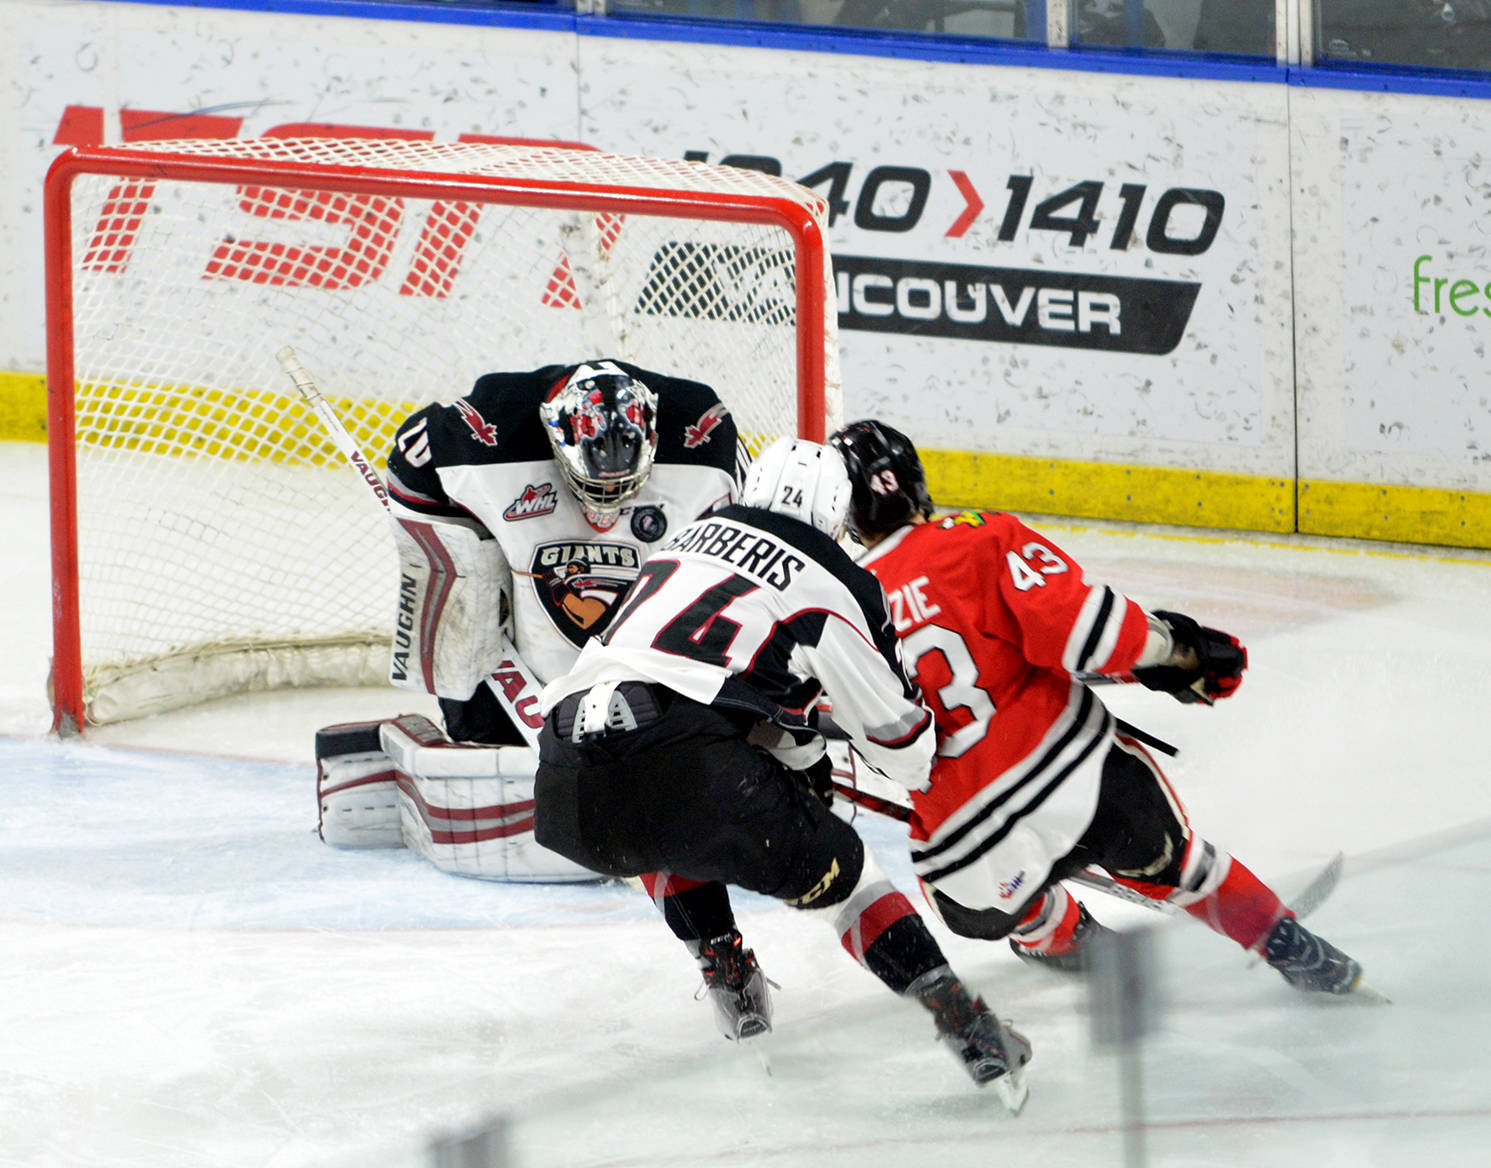 Goaltender Ryan Kubic is looking to build on a solid 2016/17 campaign as he prepares for his third season with the Vancouver Giants.                                 Gary Ahuja Langley Times file photo                                Goaltender Ryan Kubic is looking to build on a solid 2016/17 season. Kubic won both the Player's Choice (as selected by the fans) and Unsung Hero (as selected by his teammates) awards. Gary Ahuja Langley Times file photo